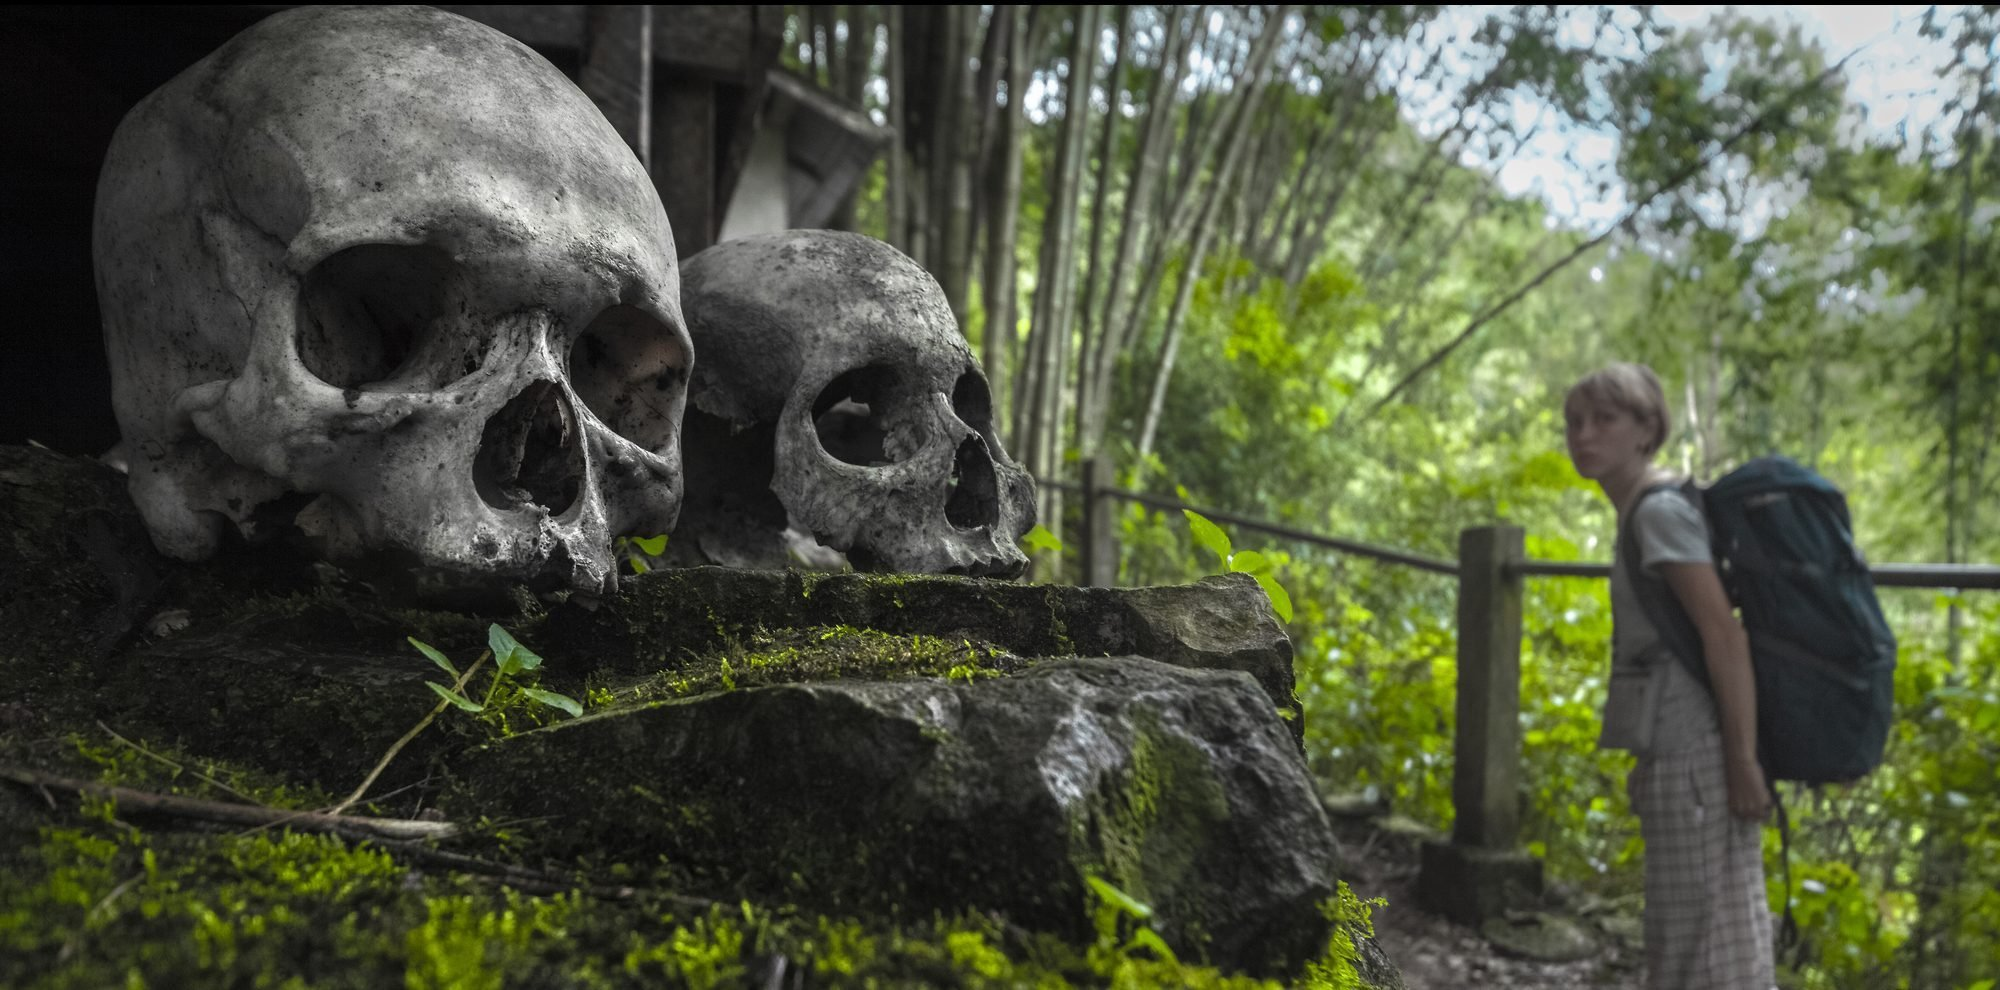 Skulls in Tana Toraja's traditional cemetery in a forest and tourist with backpack. Sulawesi island, Indonesia